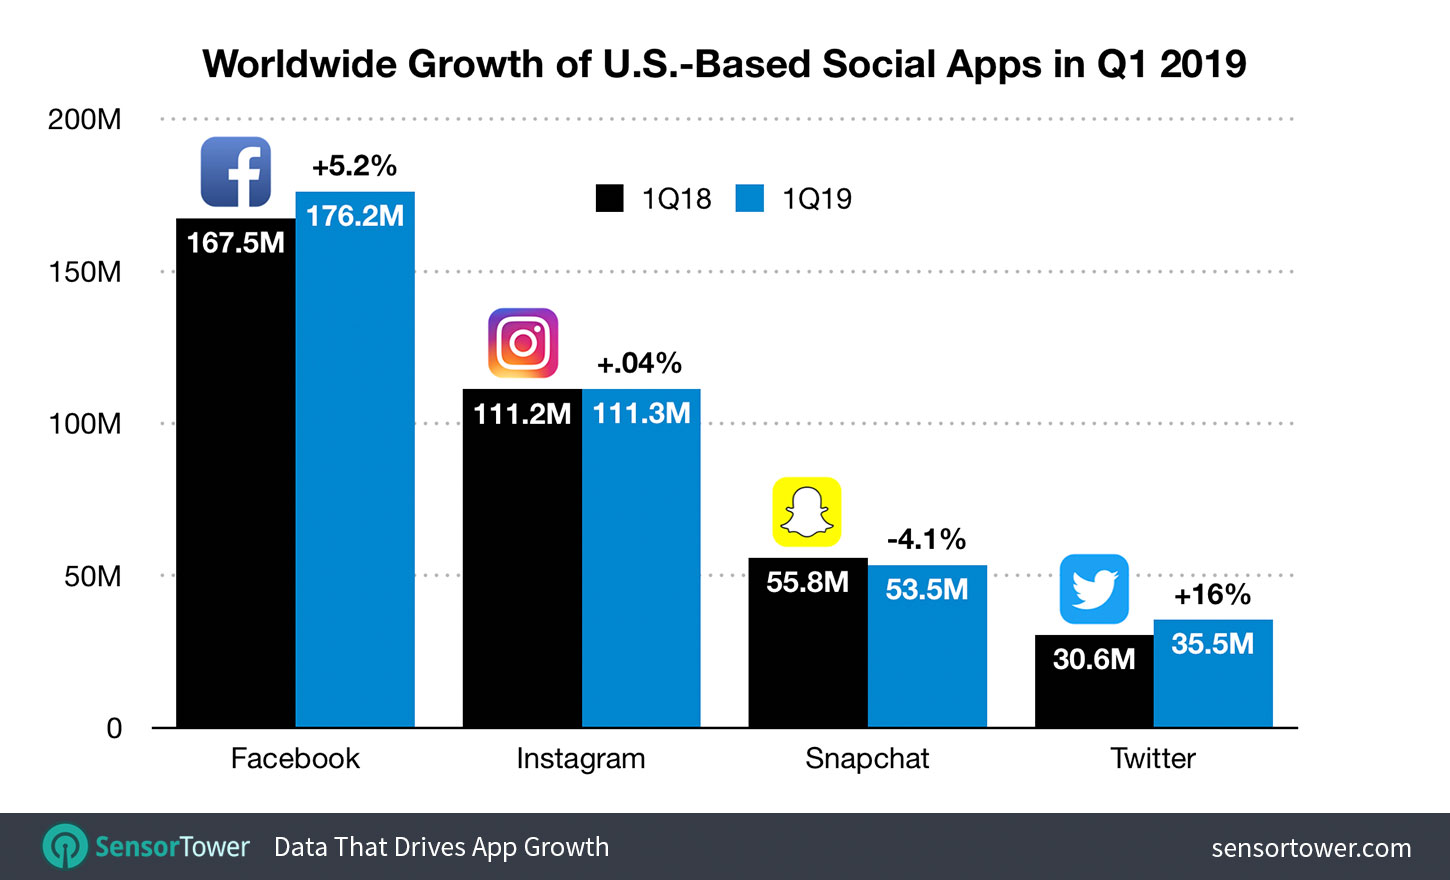 Twitter Grew More Than Facebook, Instagram, and Snapchat